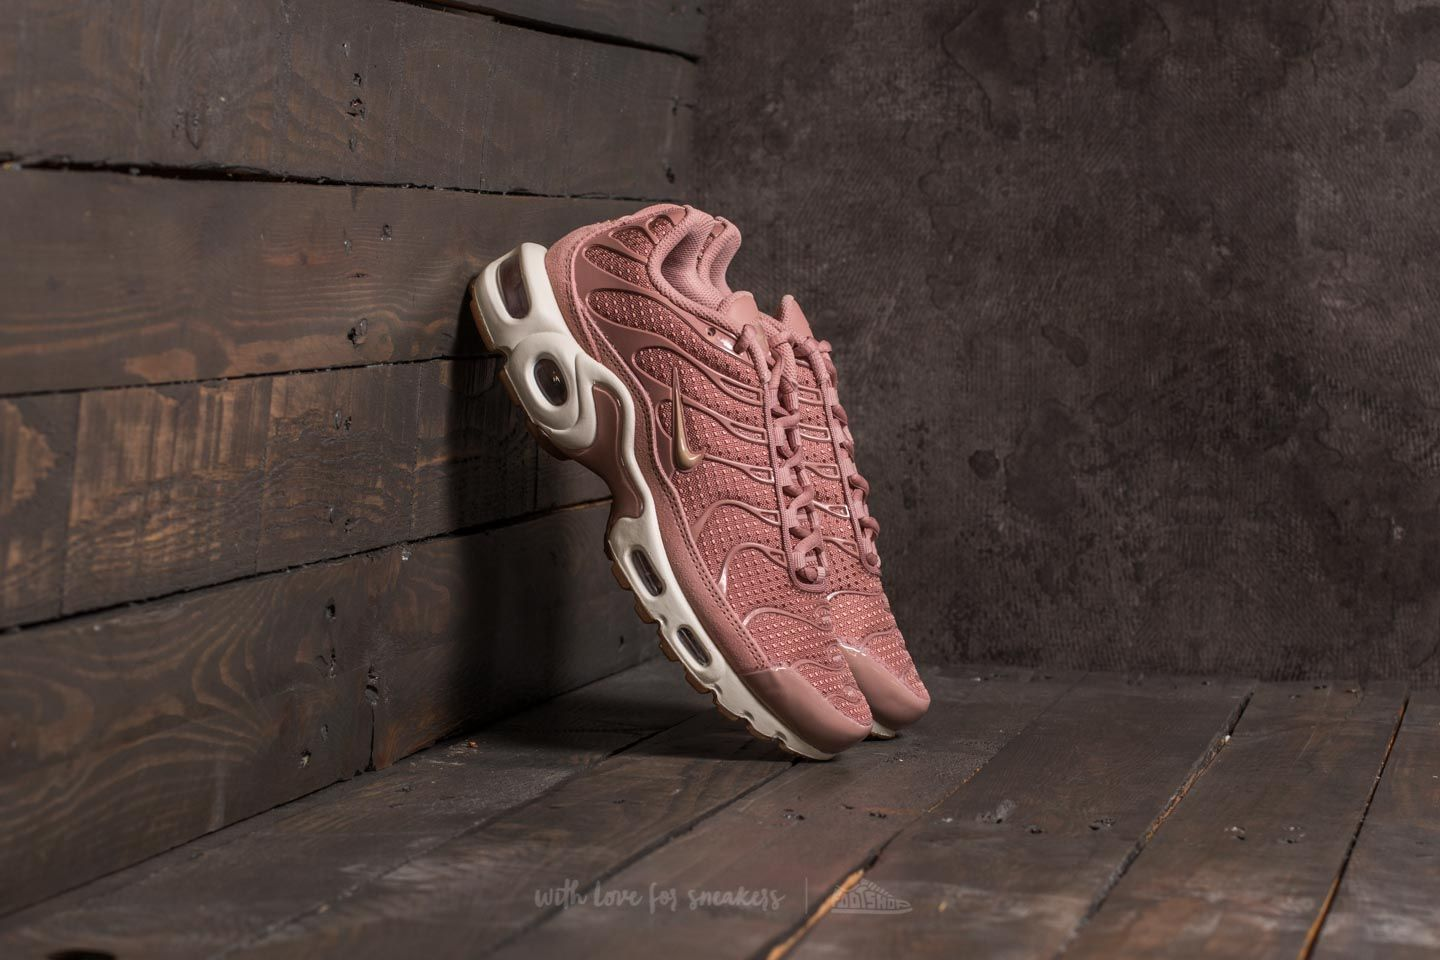 Nike Wmns Air Max Plus Particle Pink/ Mushroom-Sail